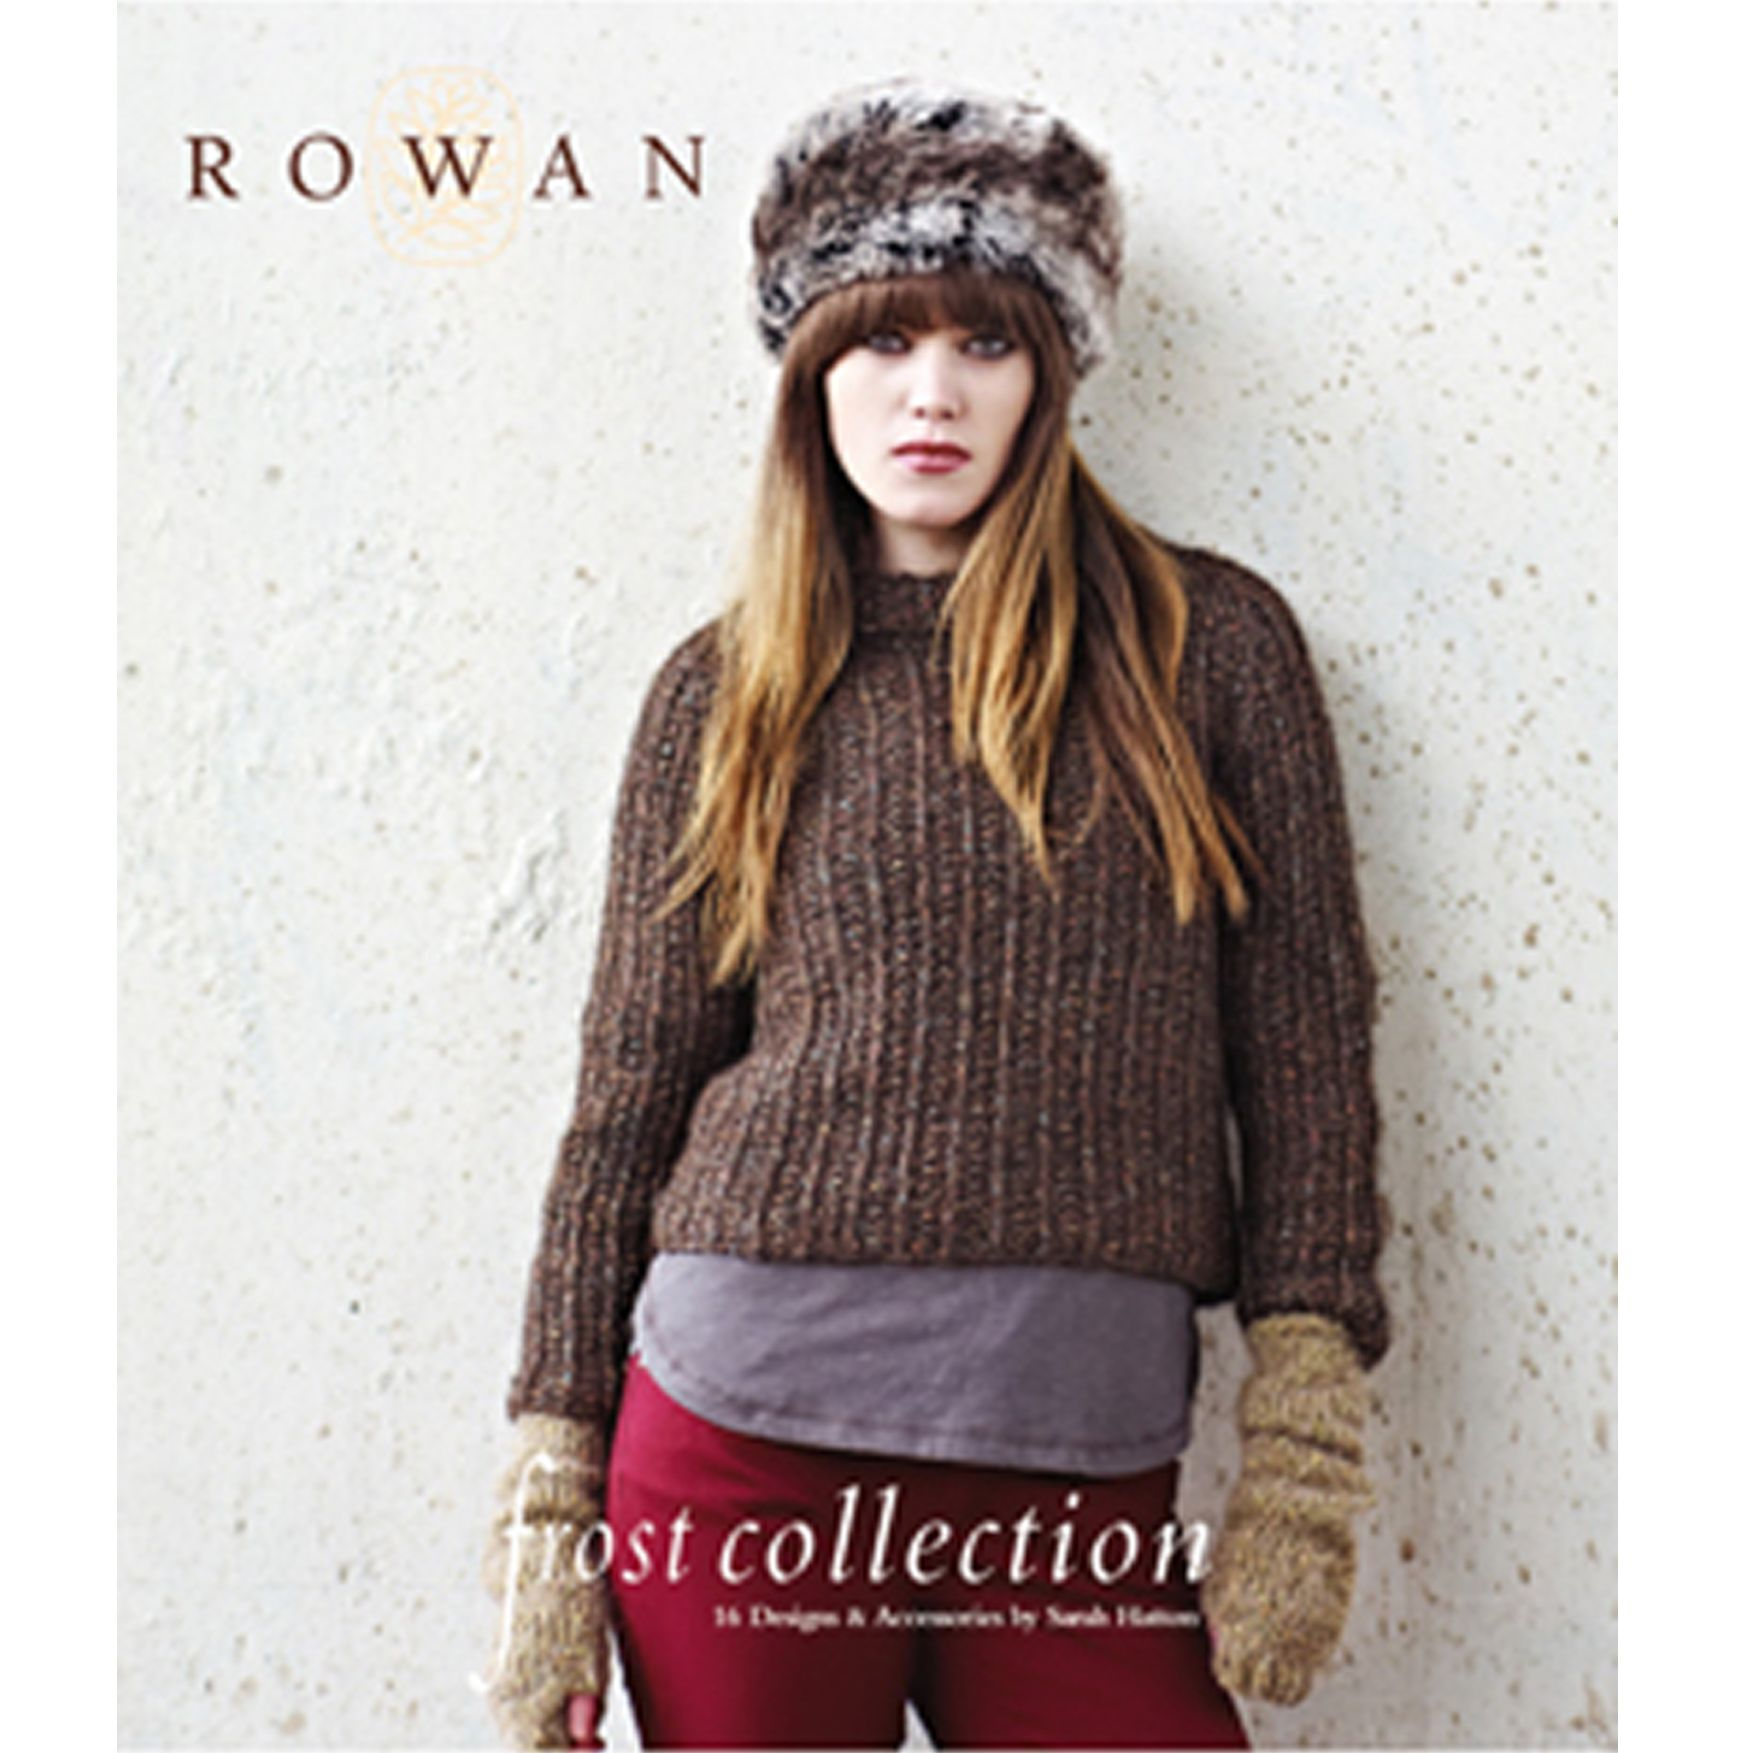 Knitting Pattern John Lewis : Buy Rowan Frost Collection Knitting Patterns Brochure John Lewis